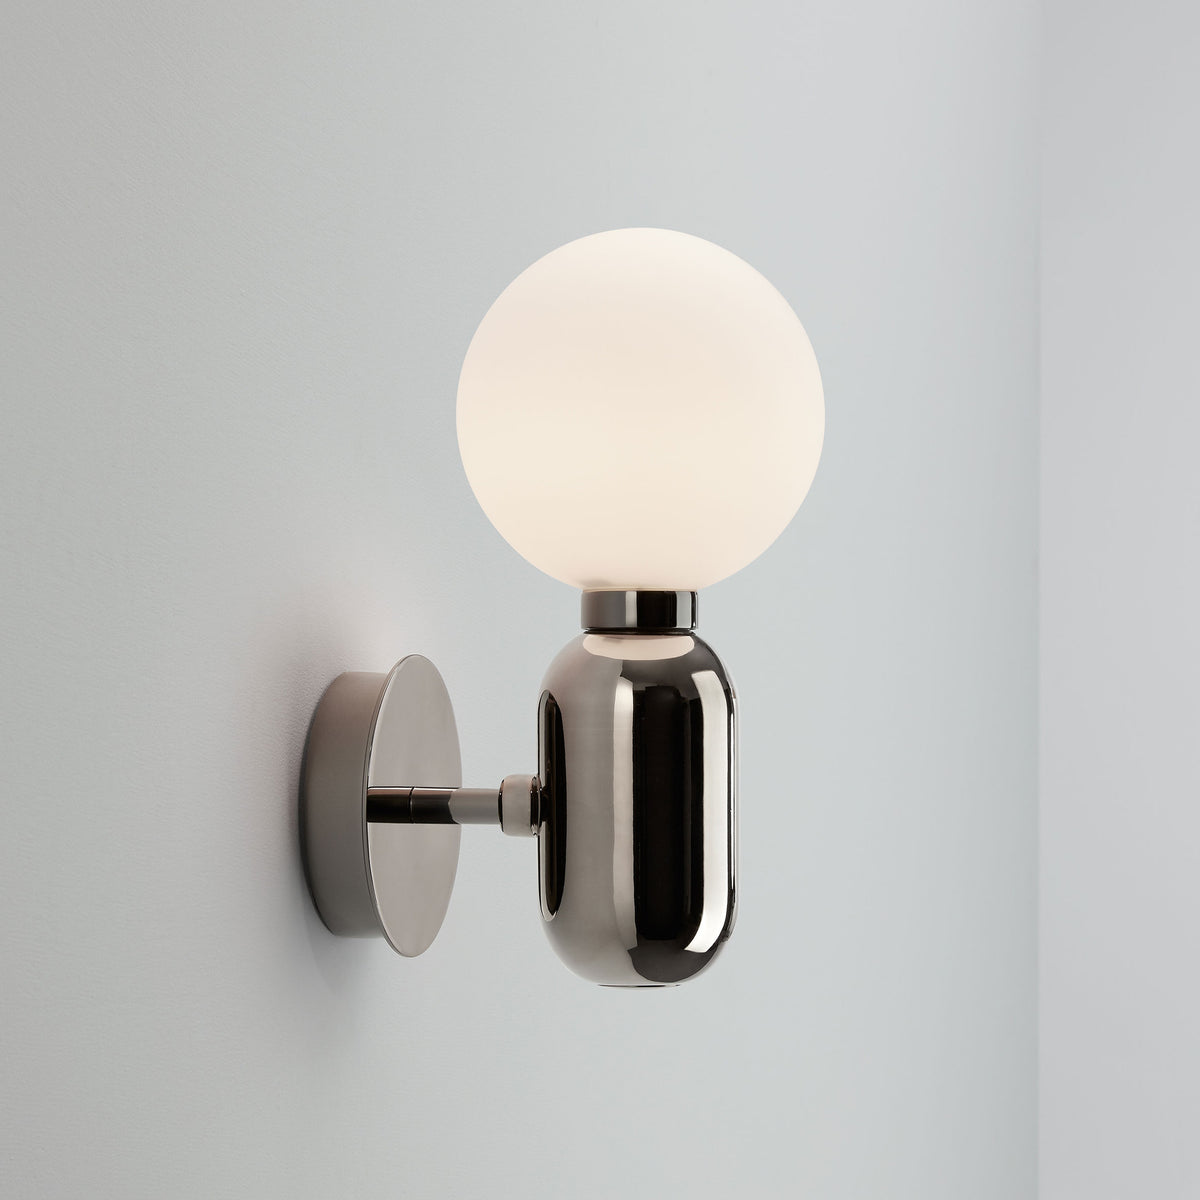 Aballs A Wall light - Monologue London